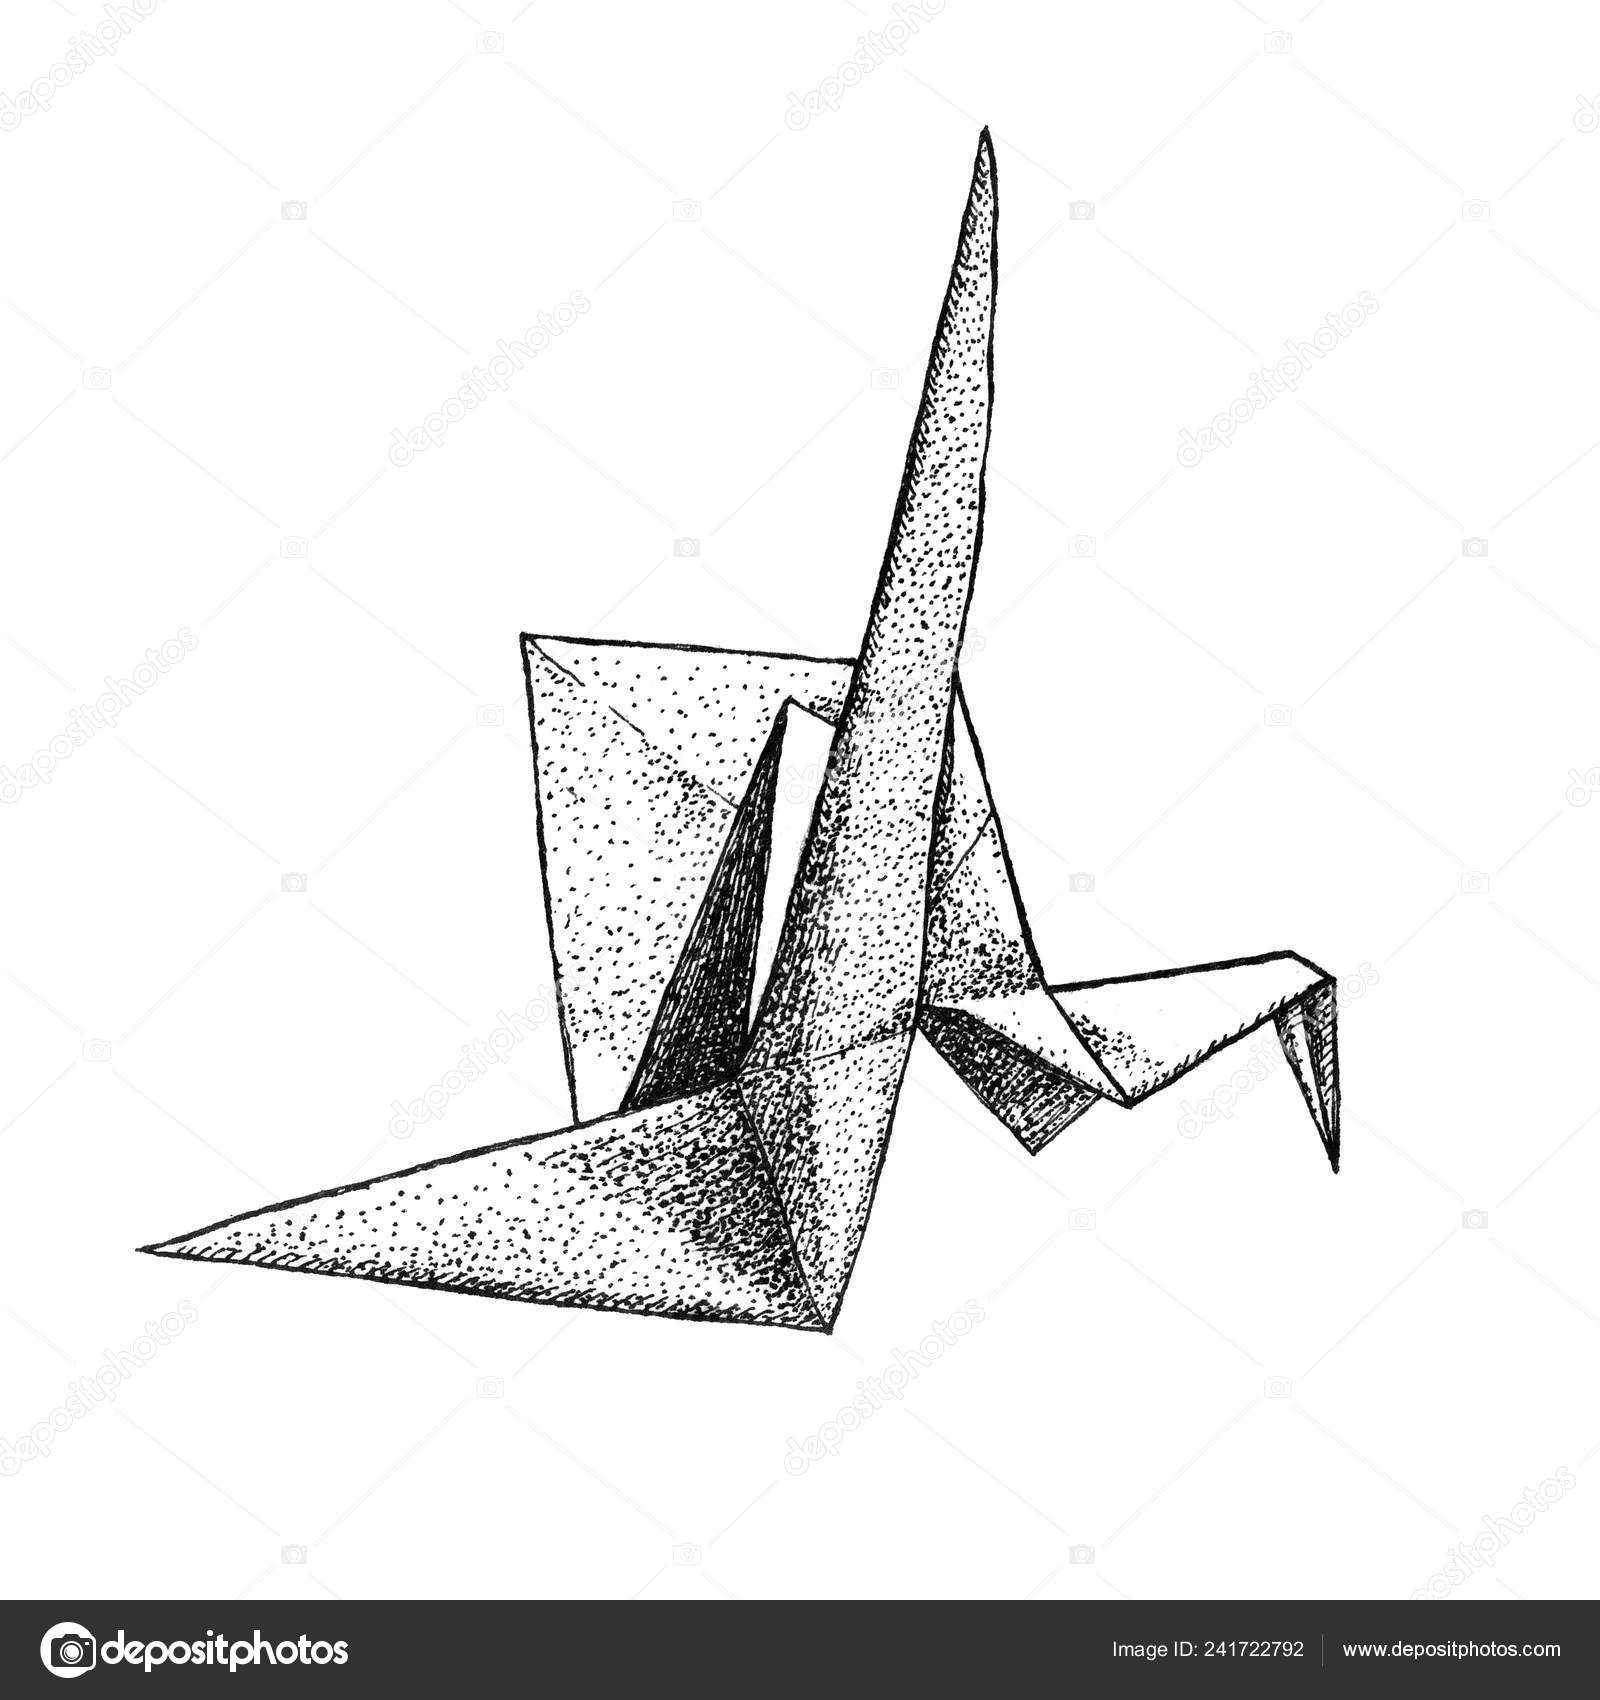 Origami Crane Drawing - Free Transparent PNG Clipart Images Download | 1700x1600